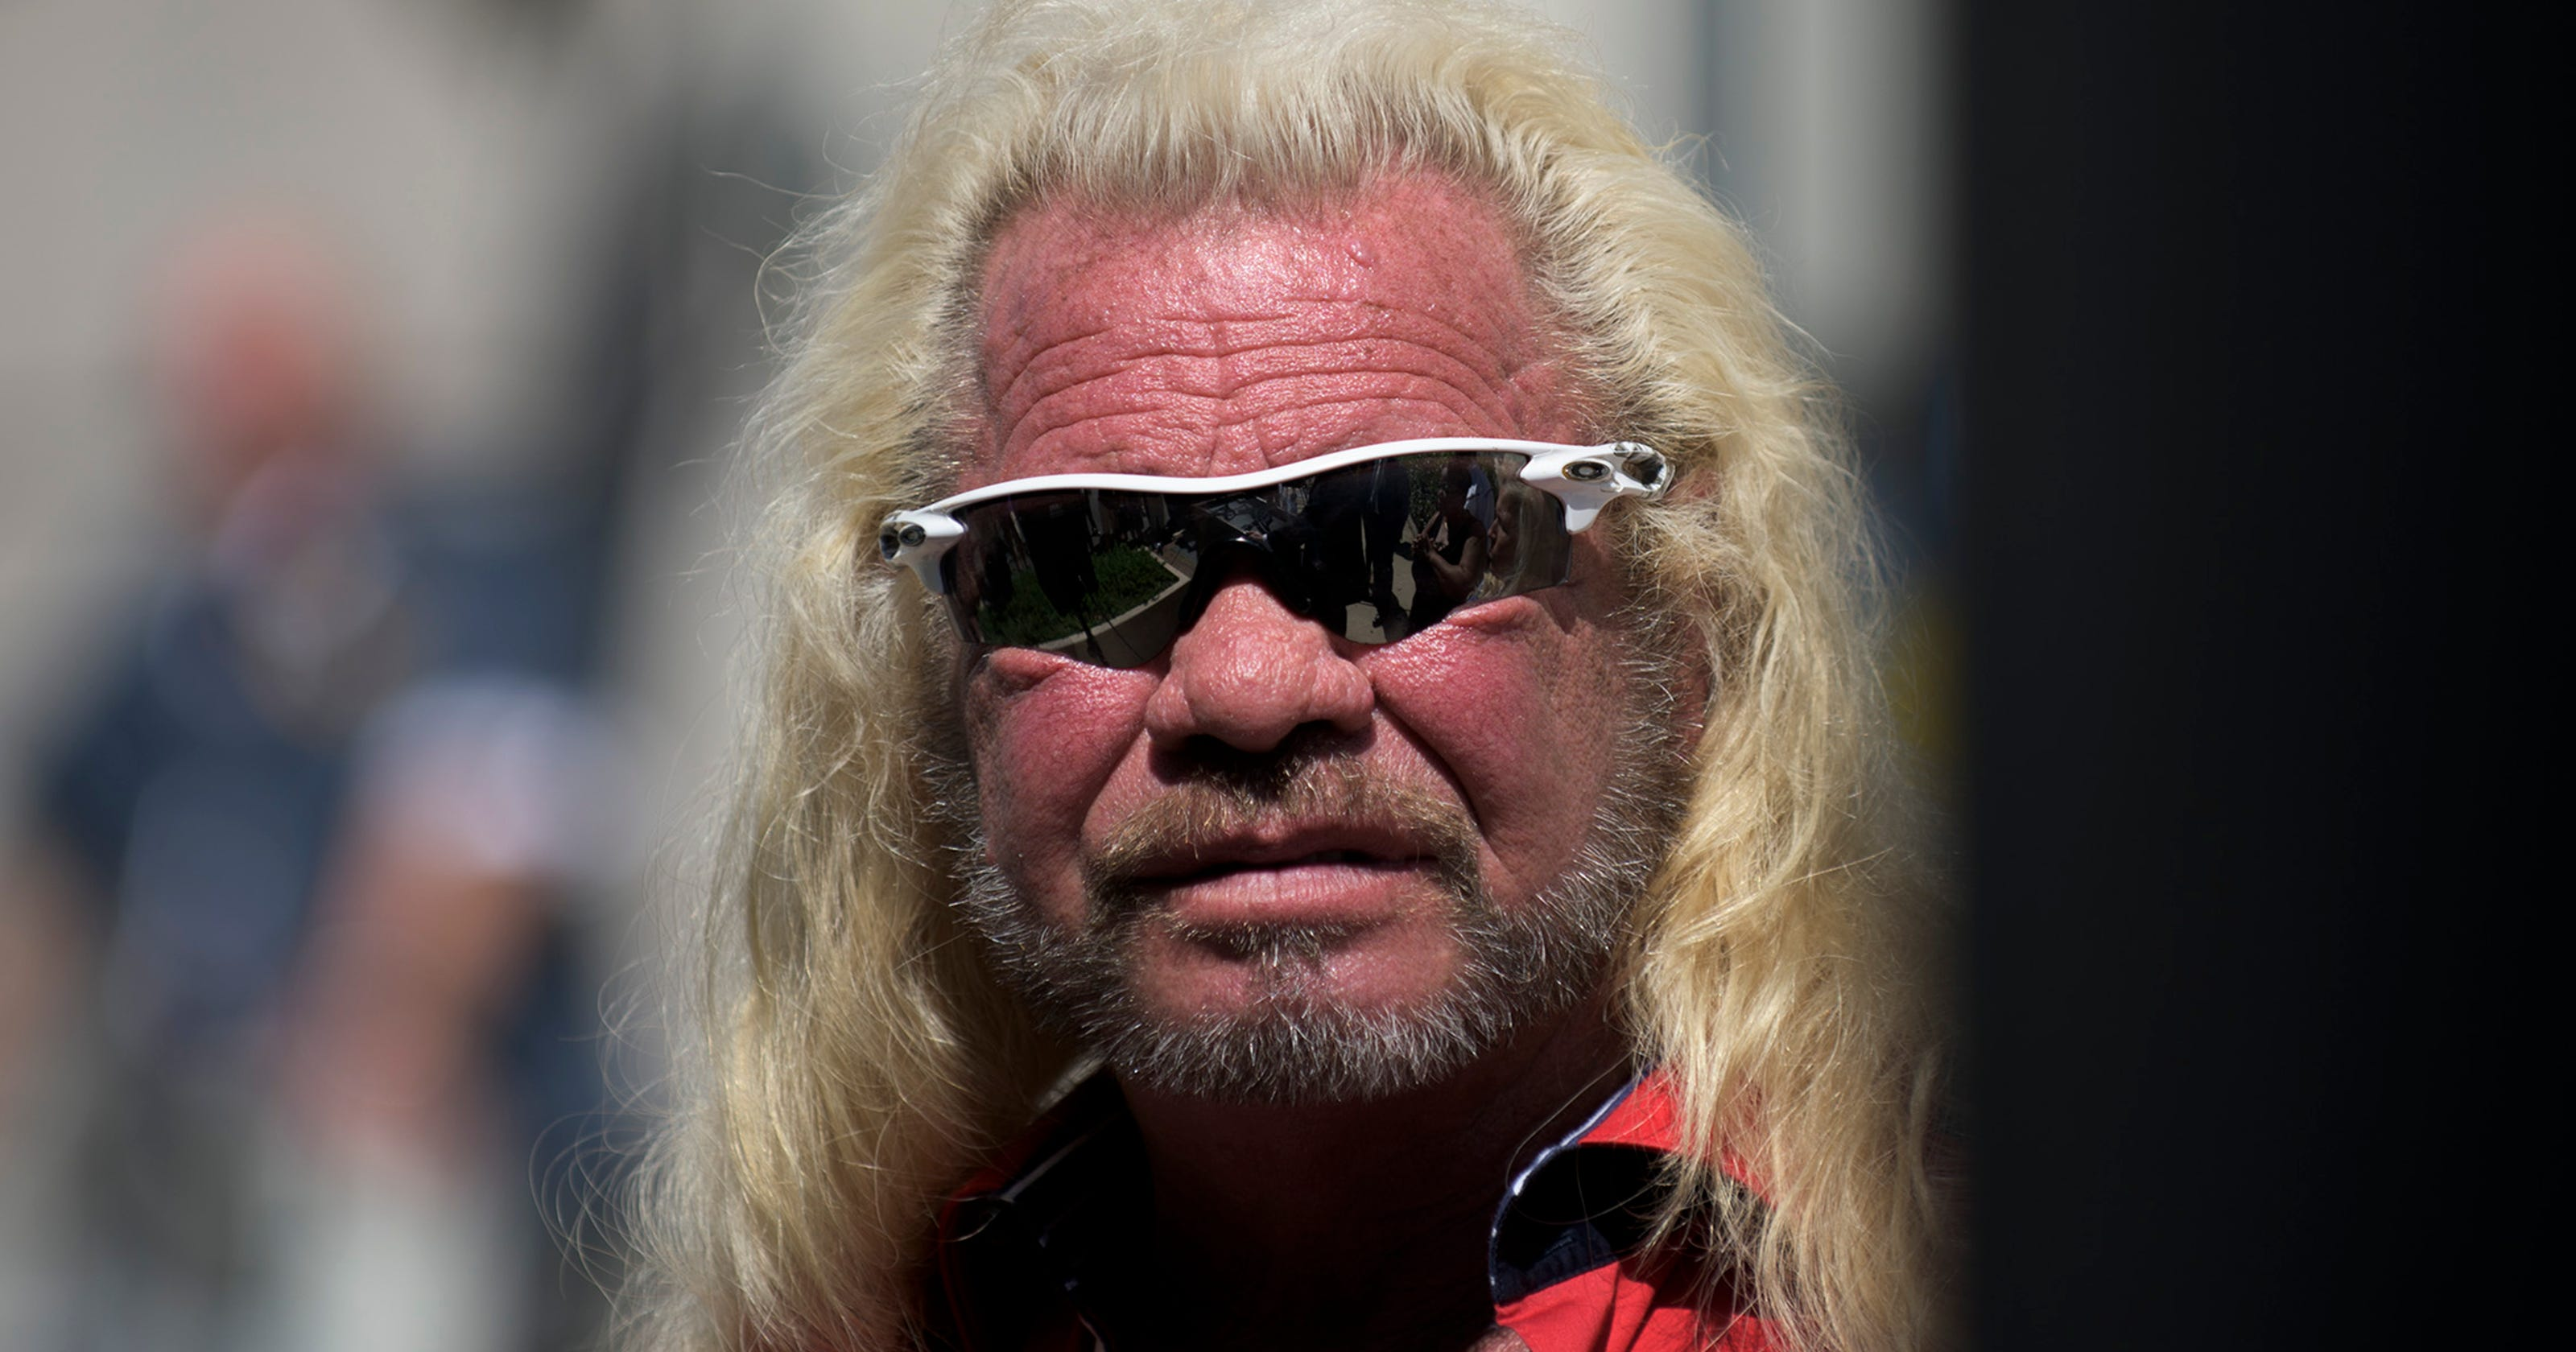 Watch Beth Chapman Dog The Bounty Hunter porn videos for free here on Pornhubcom Discover the growing collection of high quality Most Relevant XXX movies and clips